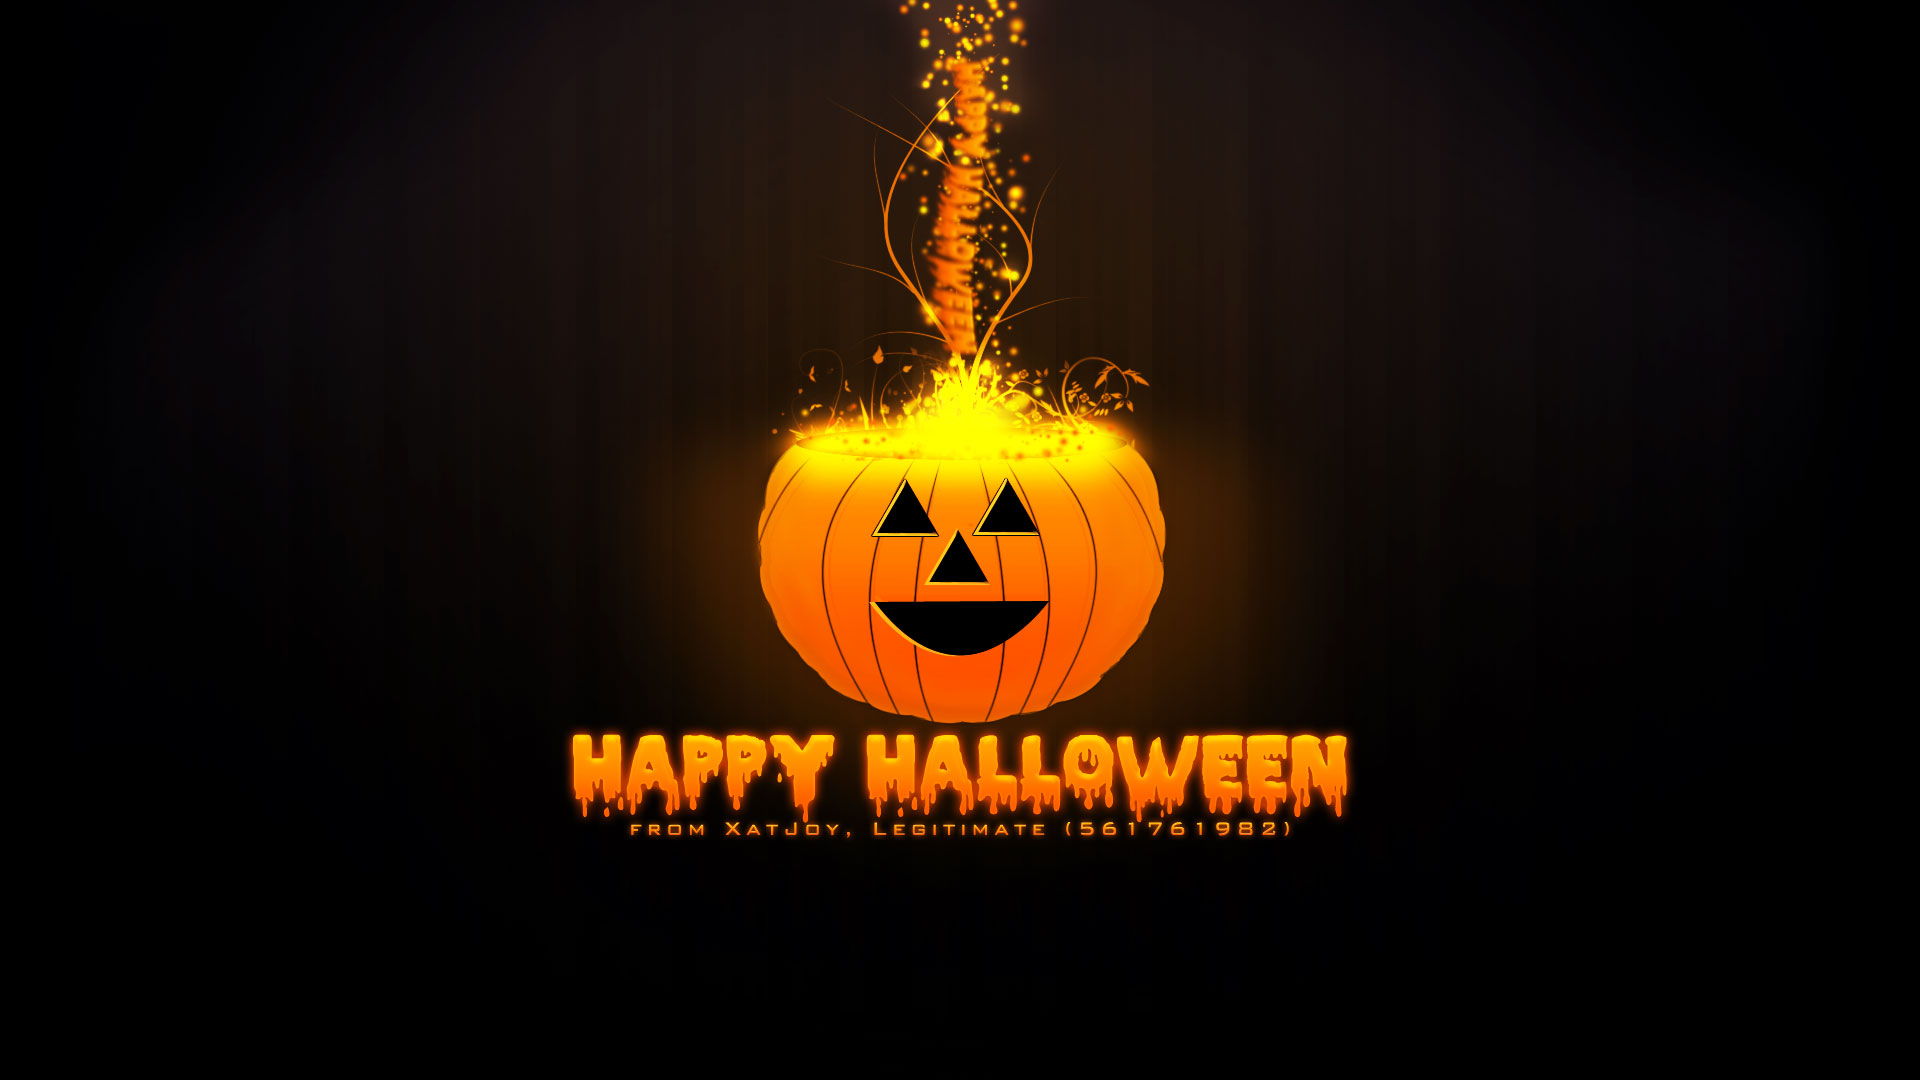 Happy Halloween Fun Image Wallpaper